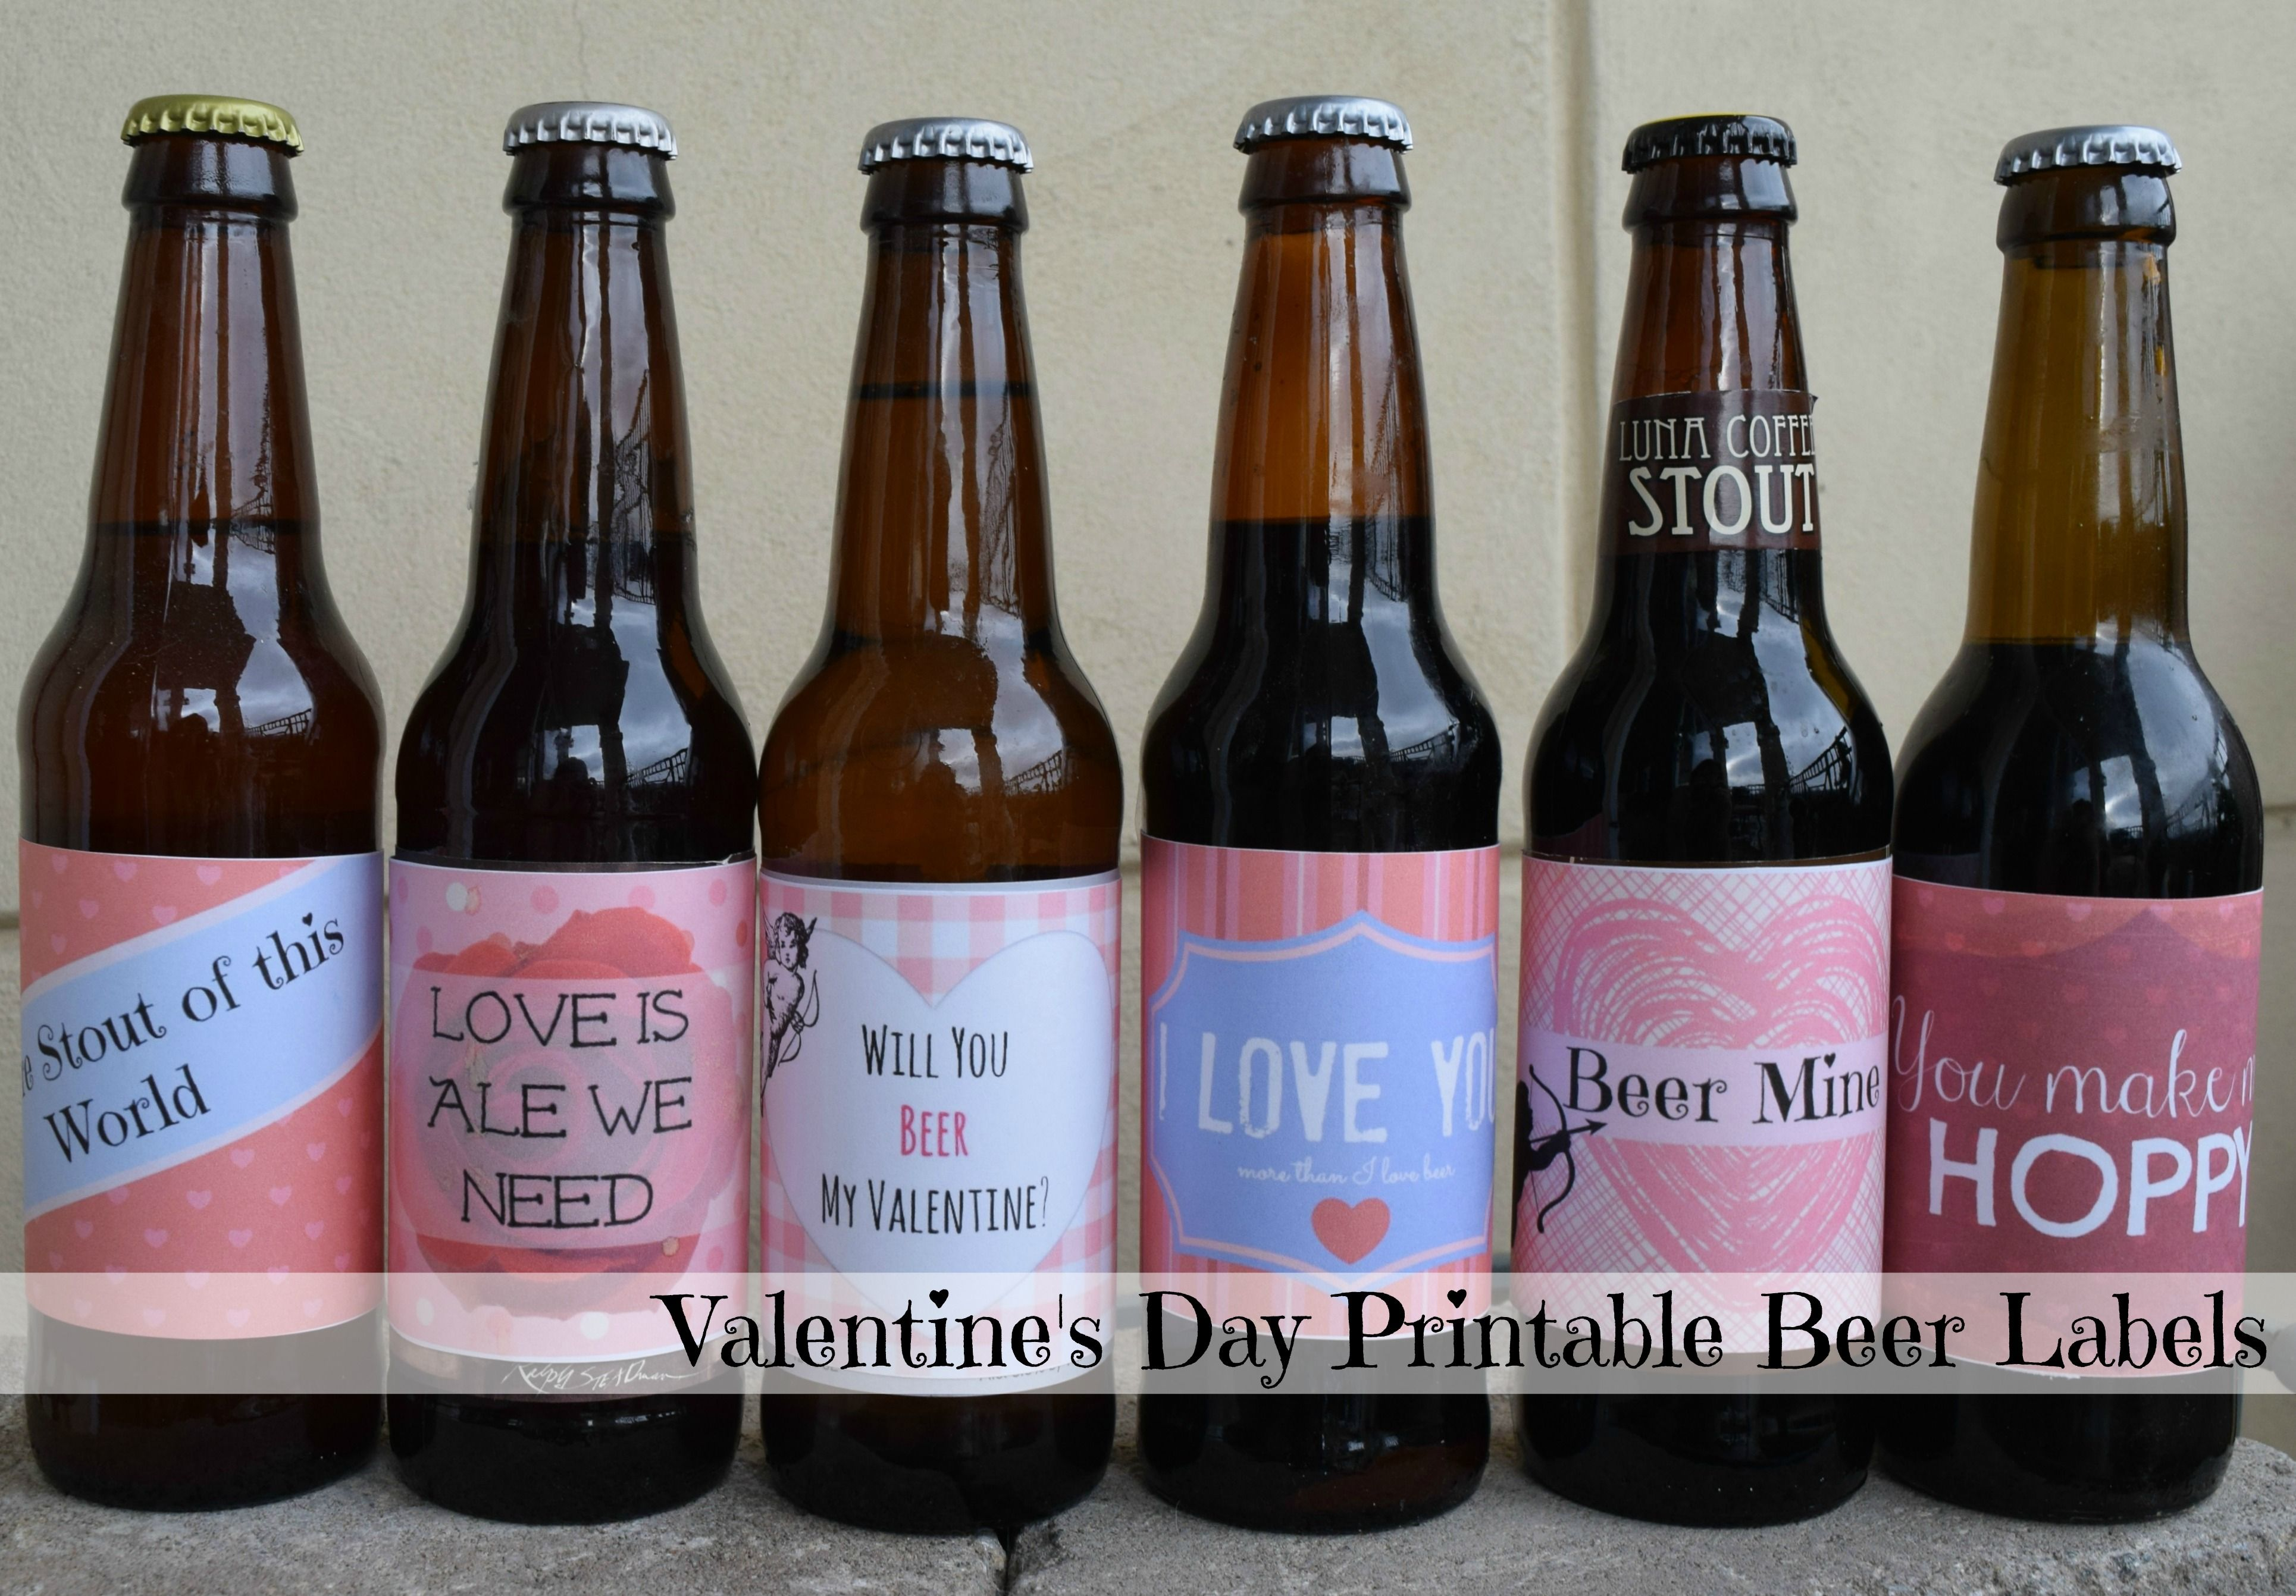 photo about Printable Beer Labels named No cost Valentines Working day Beer Label Printables Aspects Beer